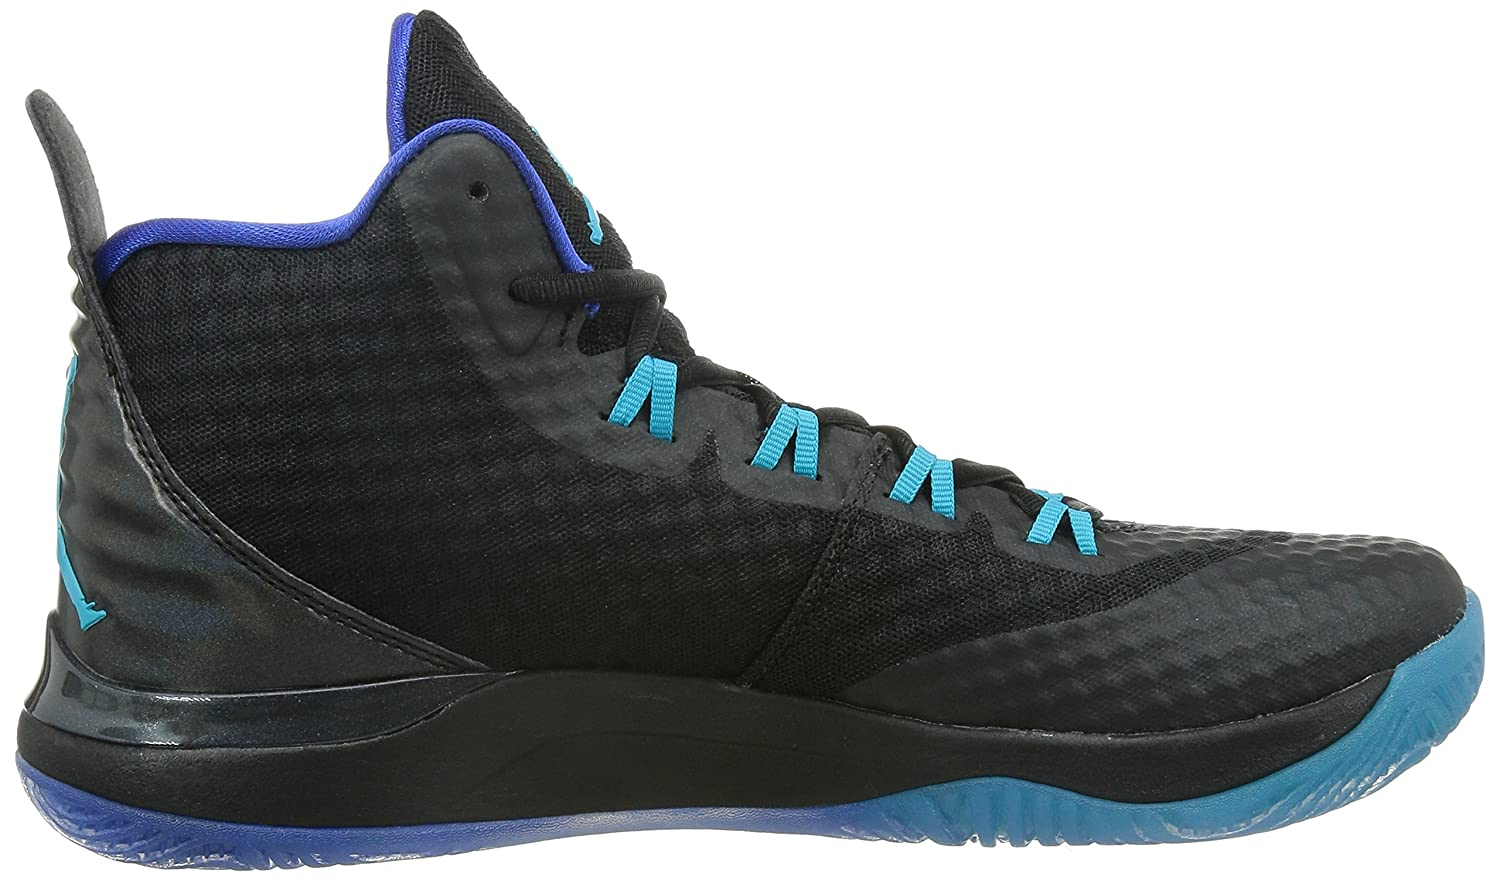 Jordan Super.Fly 3 Pro Synthetic Basketball Shoe Black/Trqs Blue/Gm Ryl/ White 8.5 D(M) US: Buy Online at Low Prices in India - Amazon.in